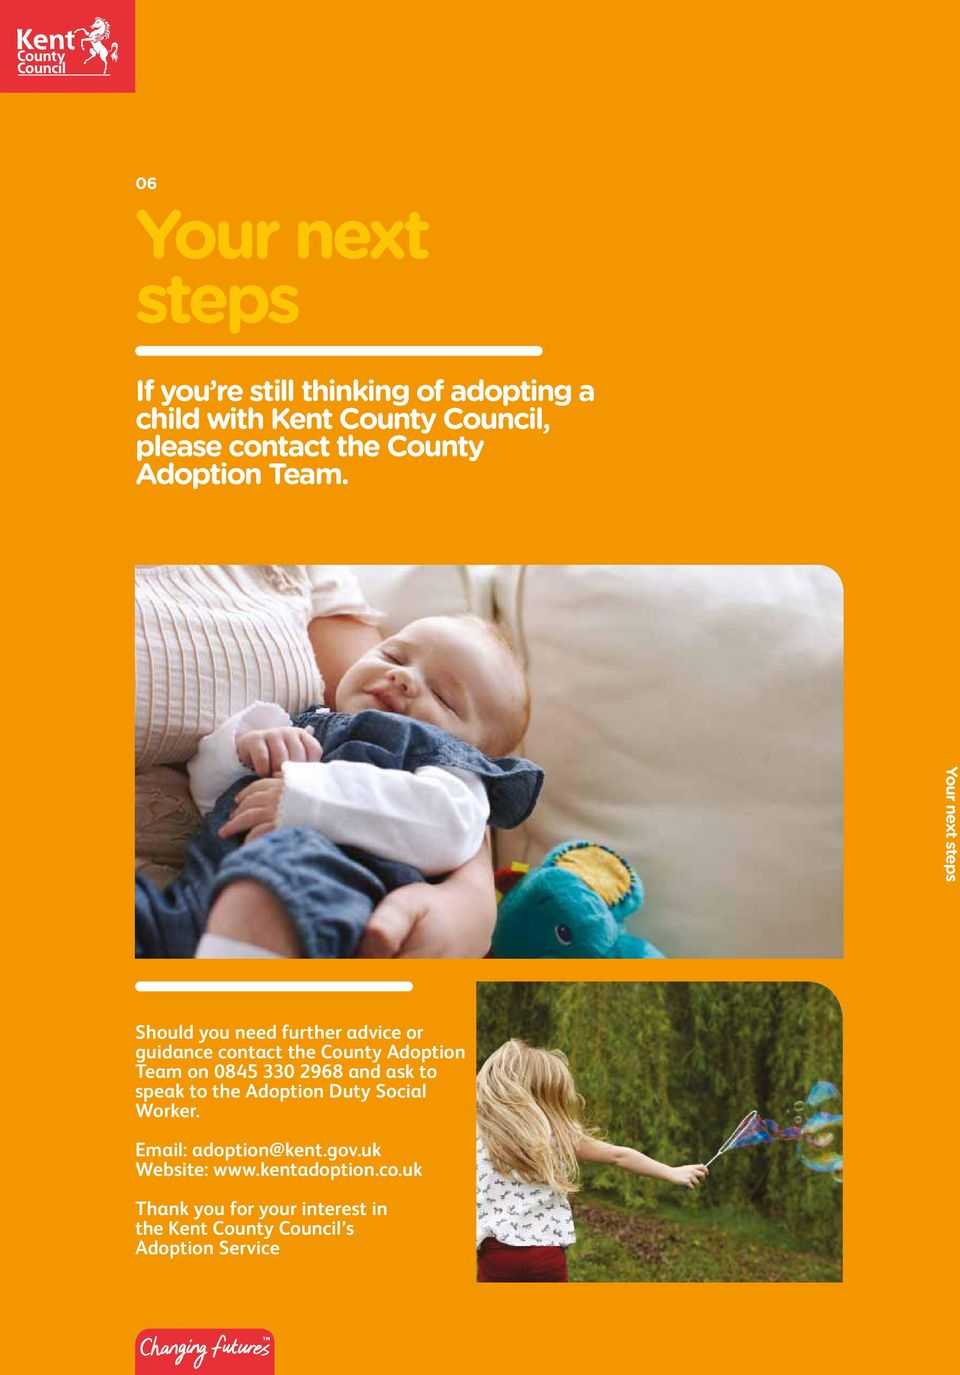 Your next steps Should you need further advice or guidance contact the County Adoption Team on 0845 330